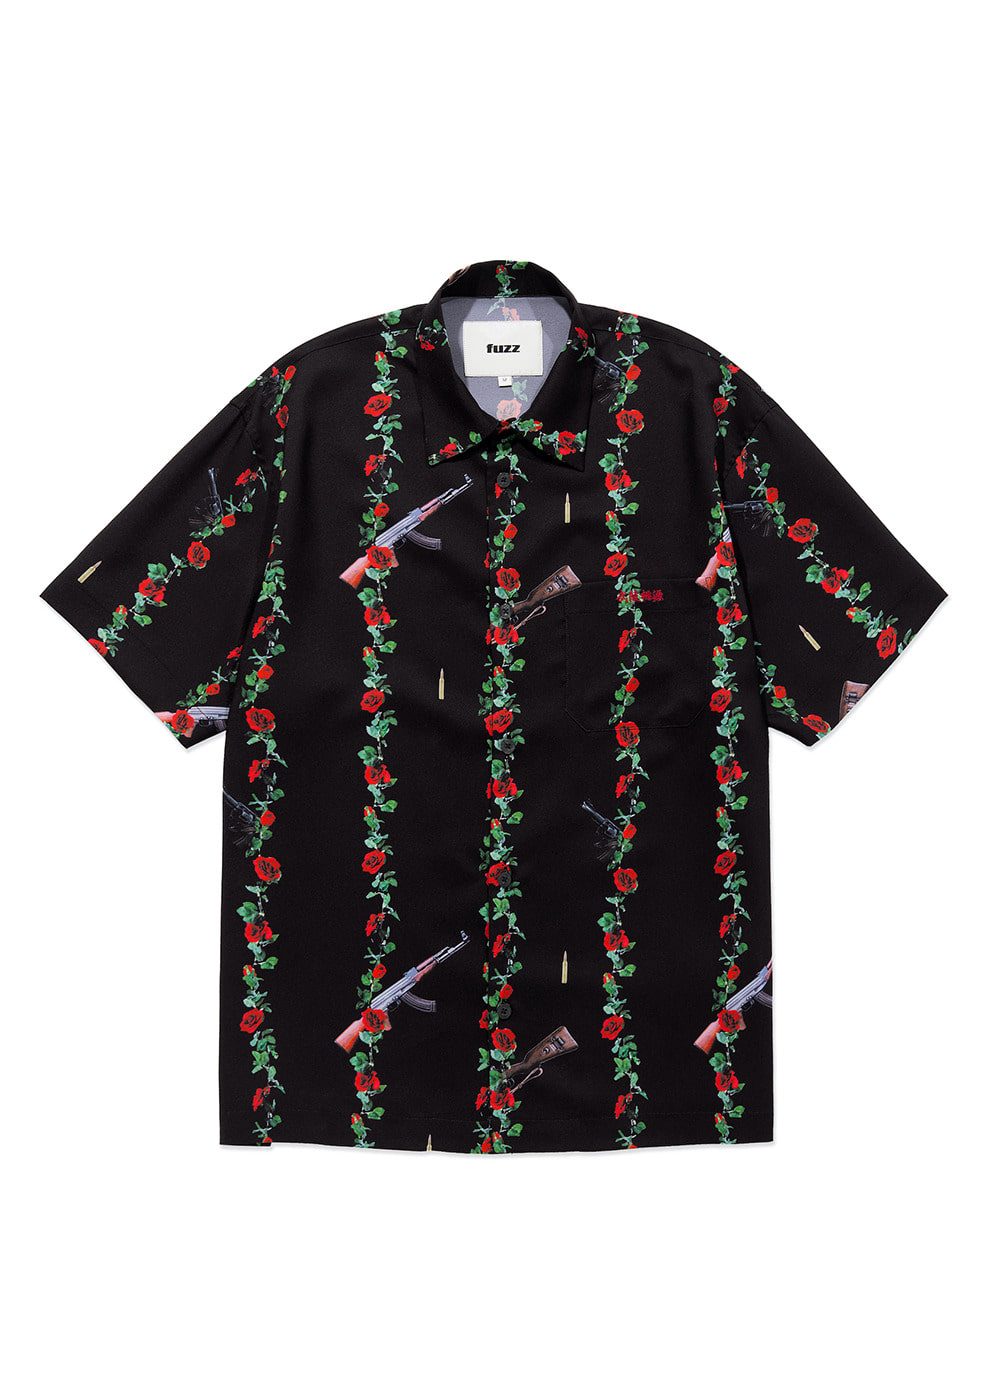 FUZZ GUNS & ROSE S/S SHIRT black